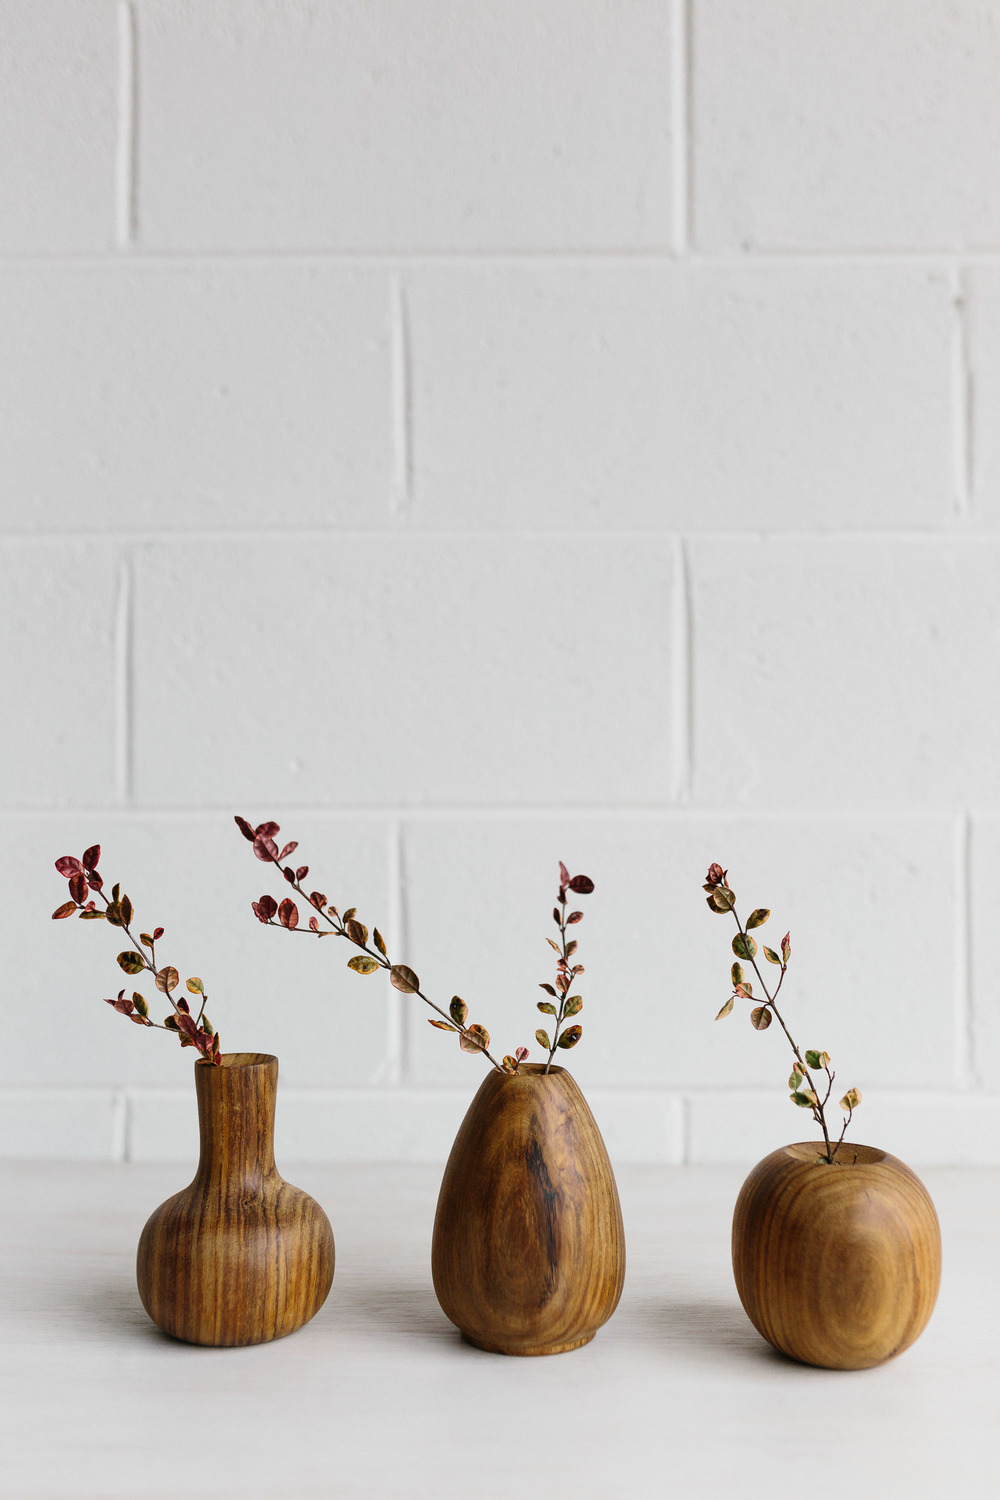 Marnie Hawson, Melbourne lifestyle photographer for Woodfolk Natural Accessories, ethical fashion and homewares